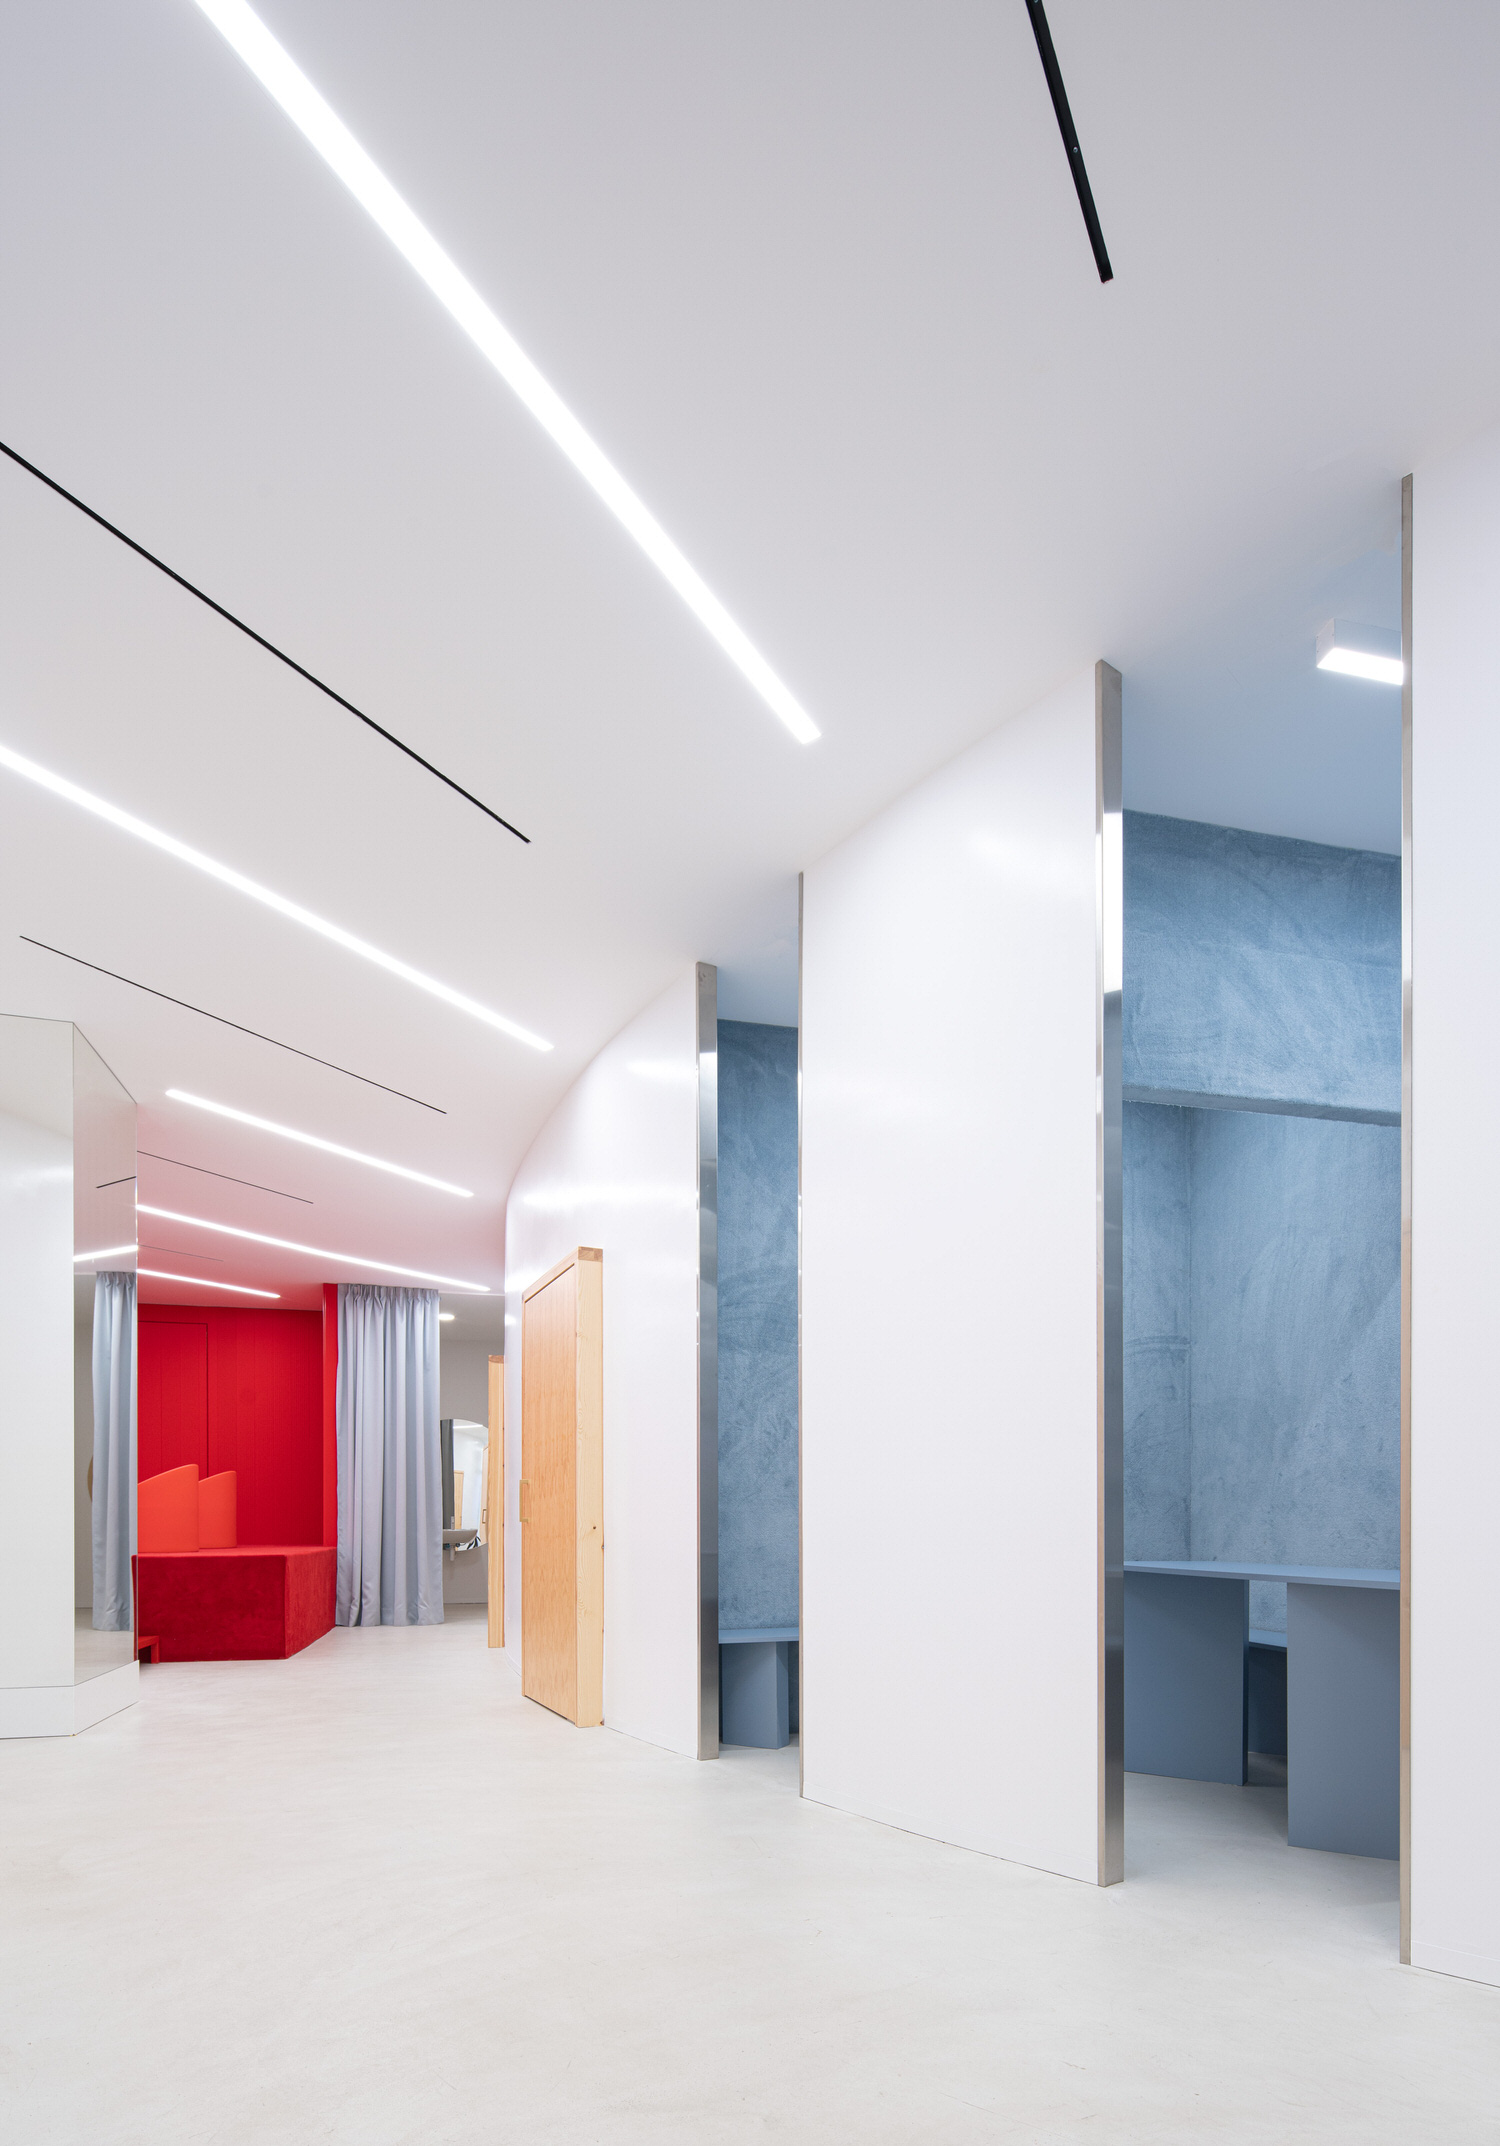 Raul Sanchez Architects Impress Valencia Dental Clinic Photo David Zarzoso Yellowtrace 01